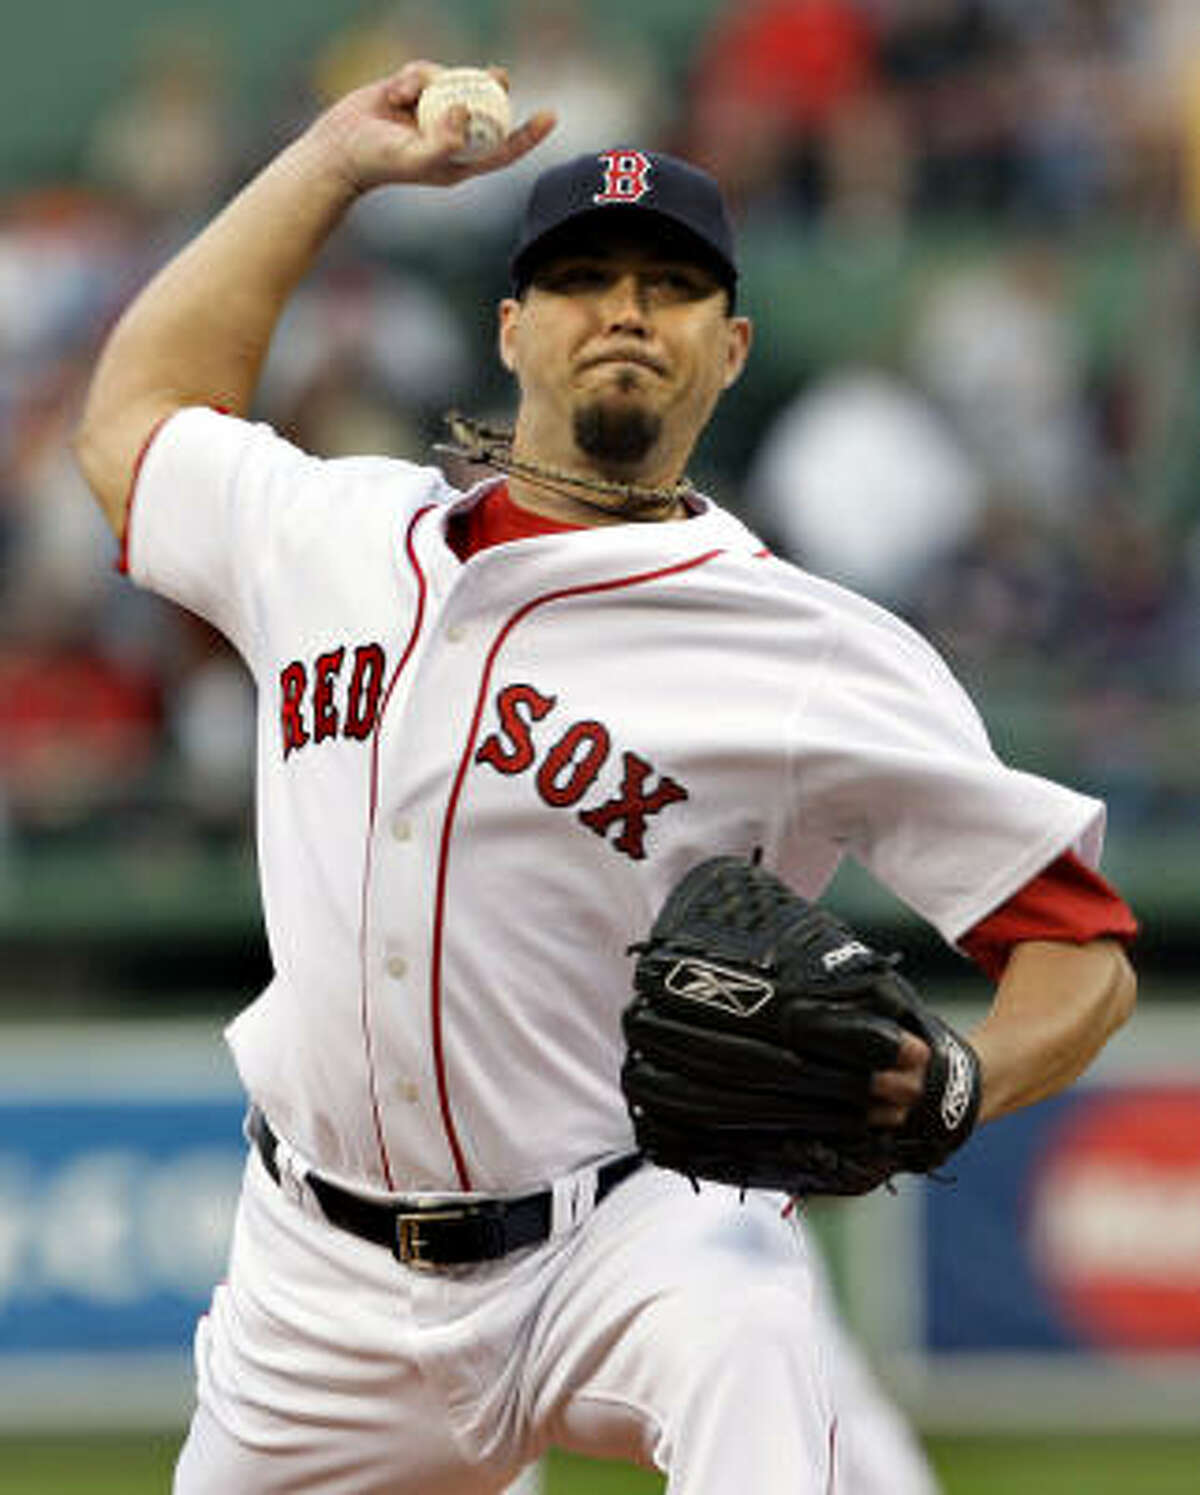 Red Sox starter Josh Beckett delivers to the Athletics in the first inning of their game Tuesday at Fenway Park.